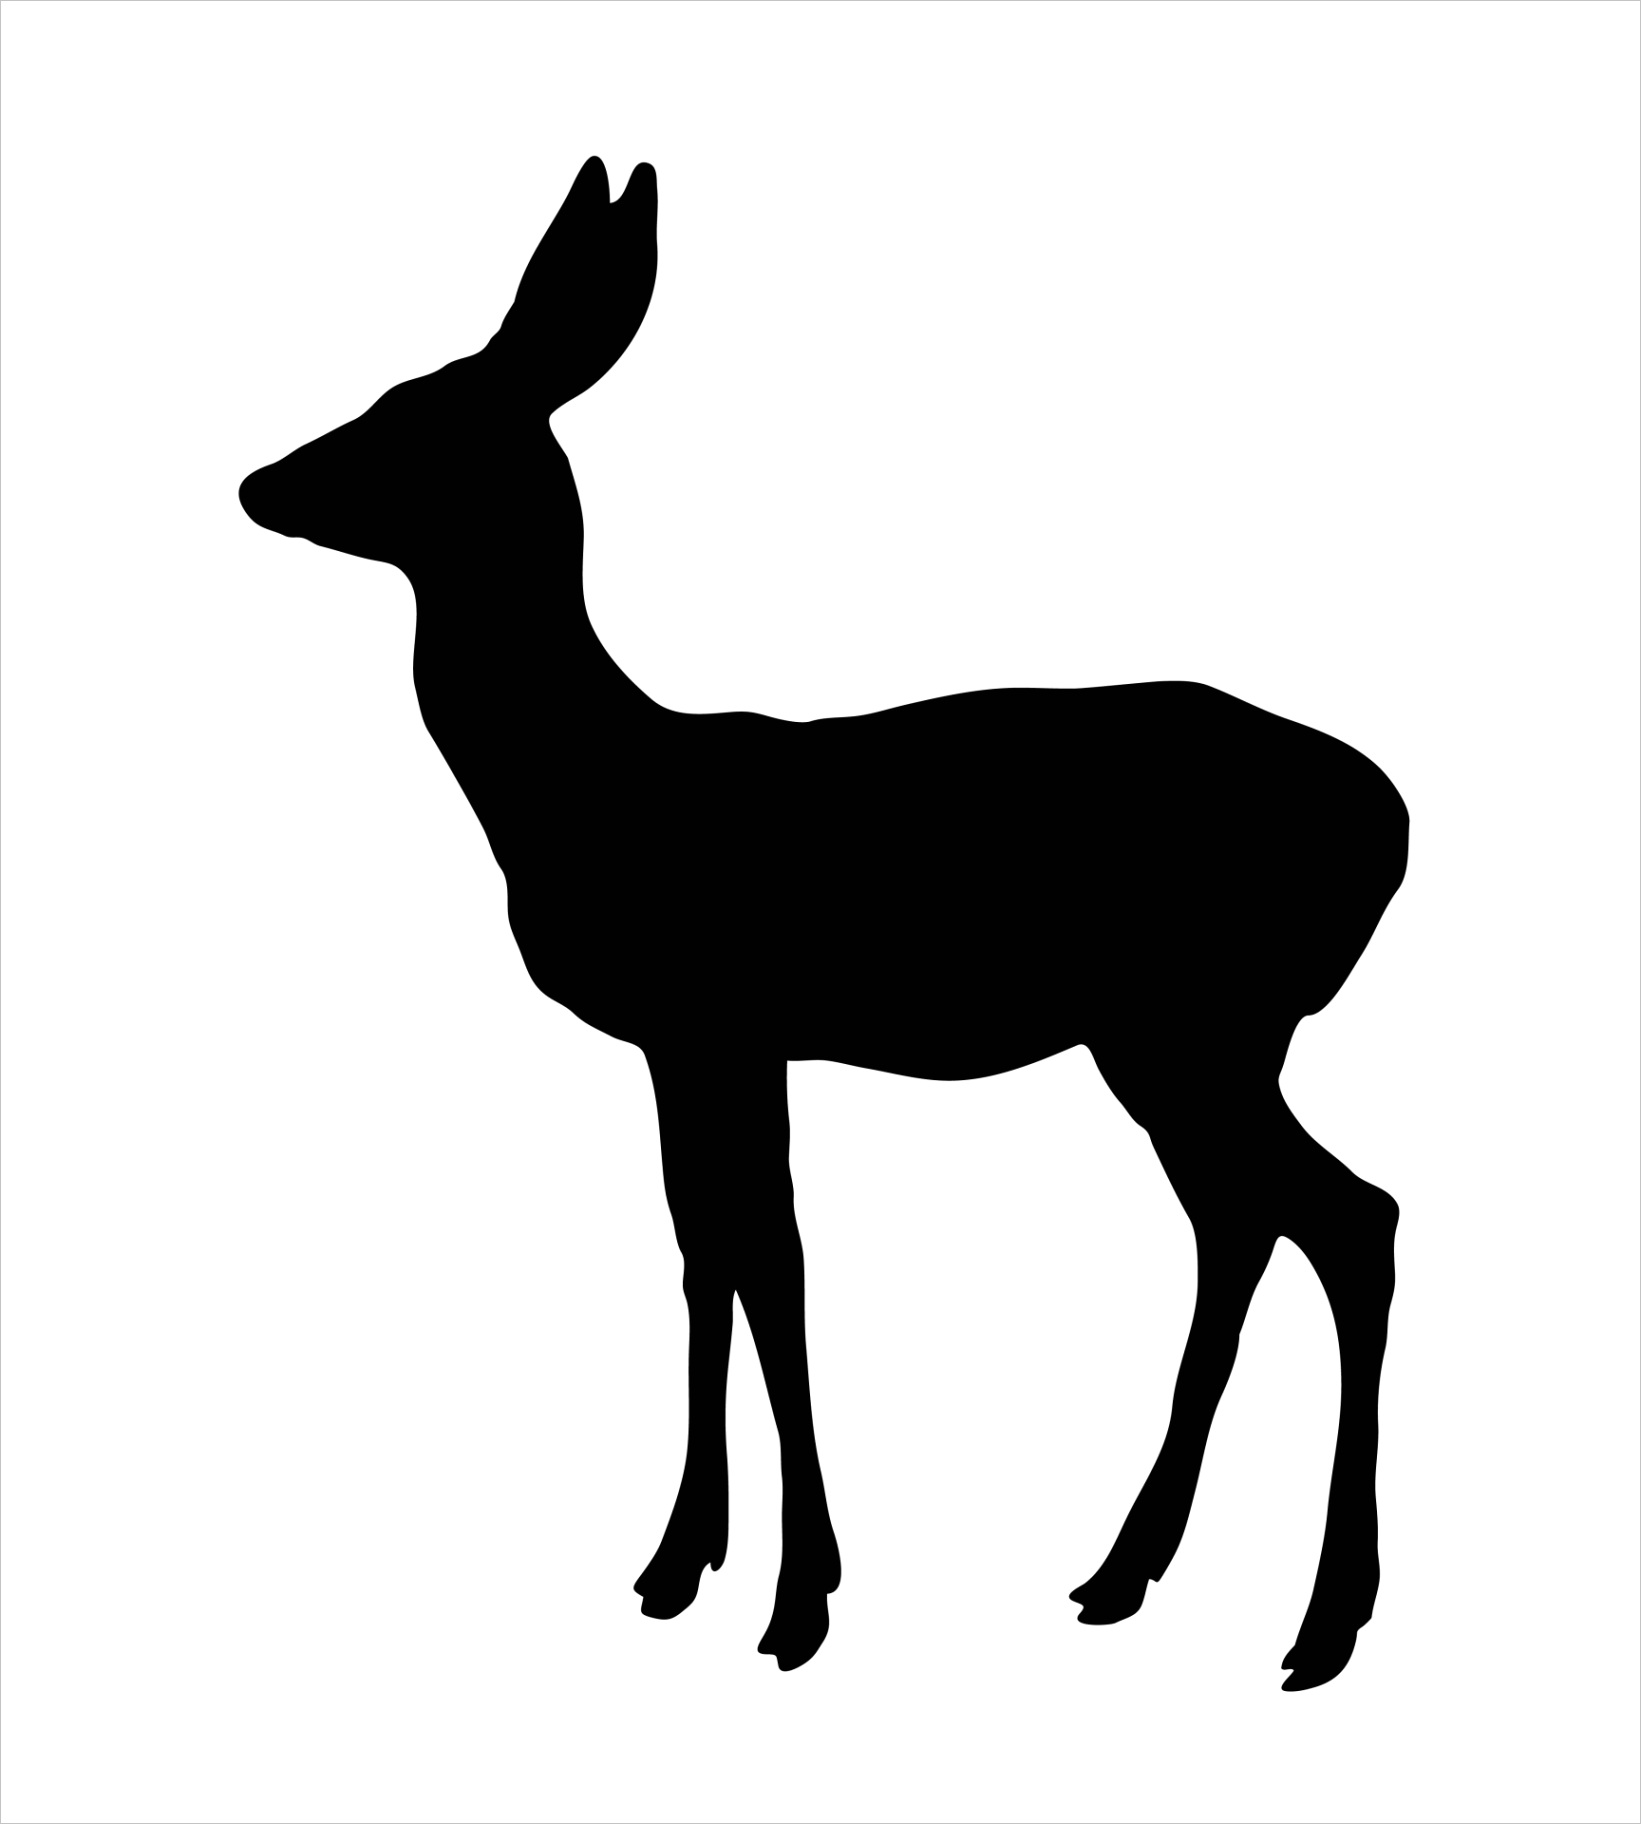 view image image= &picture=deer silhouette